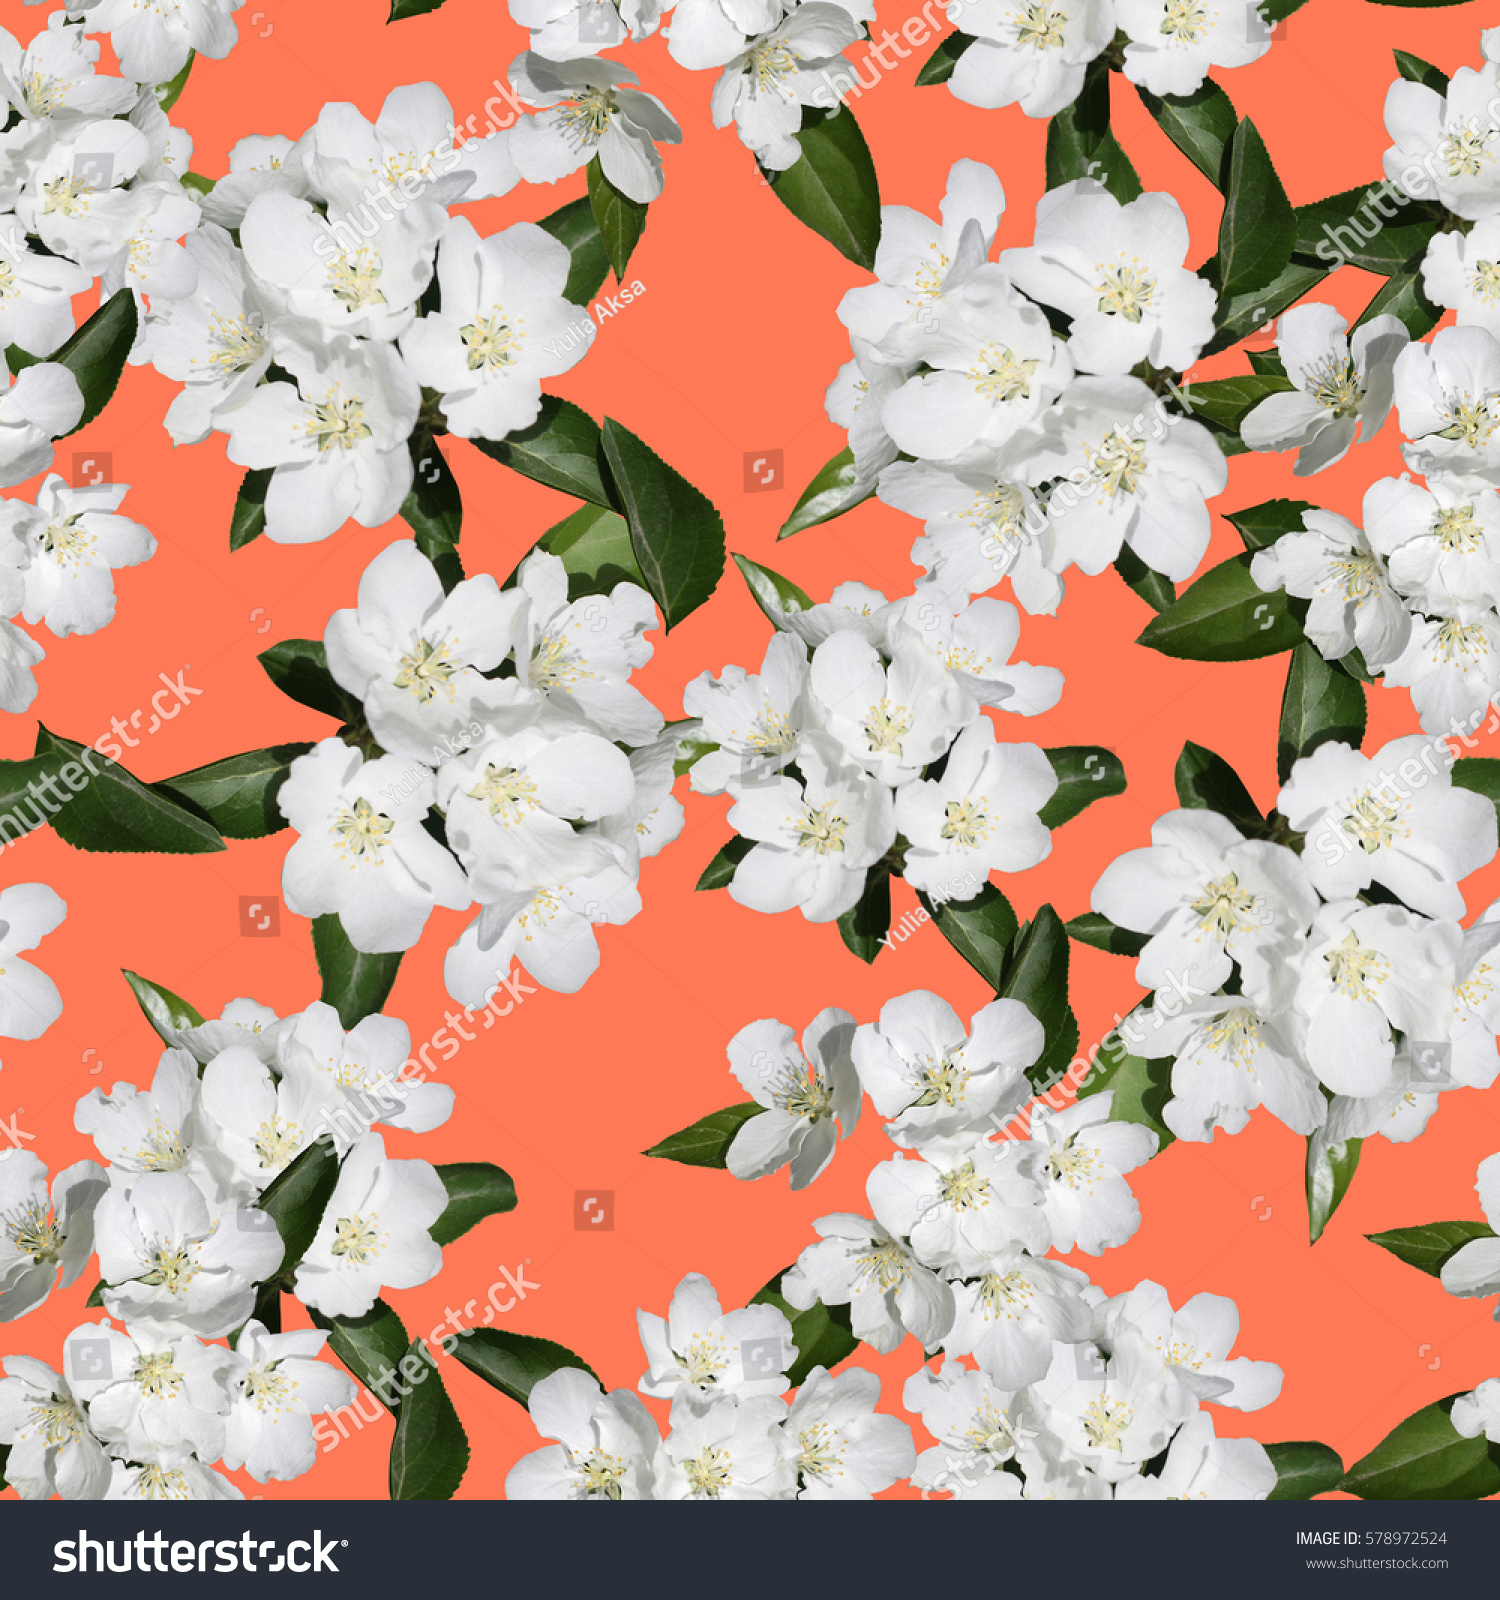 Apple blossom branch of flowers cherry on bright color backdrop. Traditional ornate spring flowers sakura pattern seamless. White flower buds on a tree. Sacura collage artistic illustration.